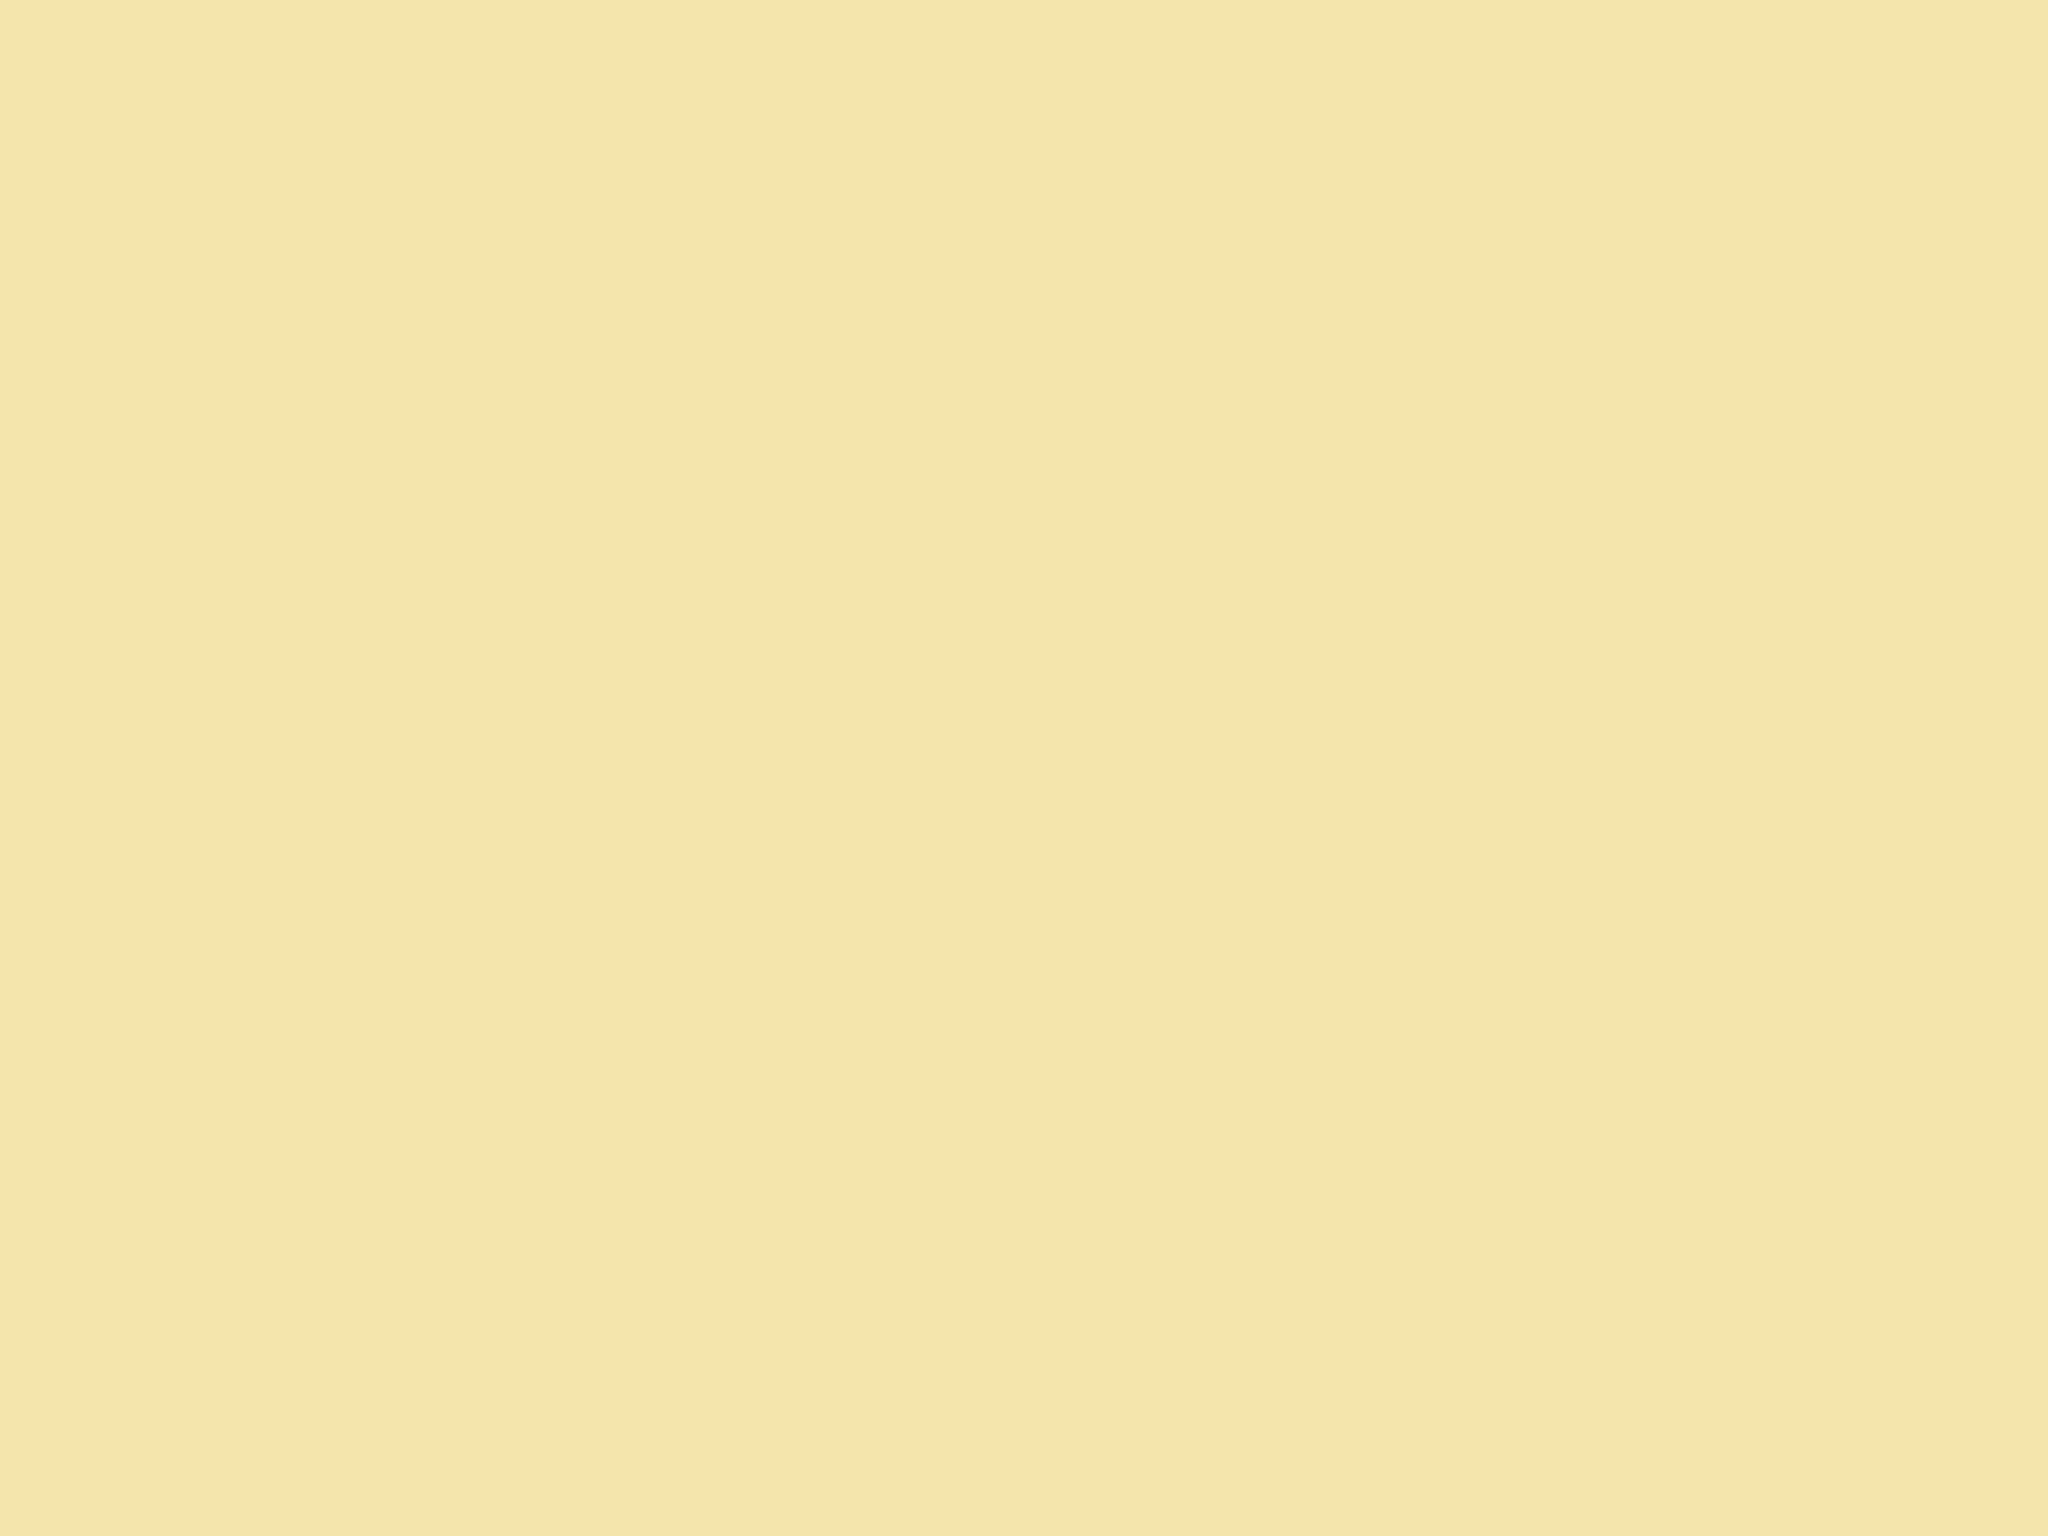 2048x1536 Medium Champagne Solid Color Background